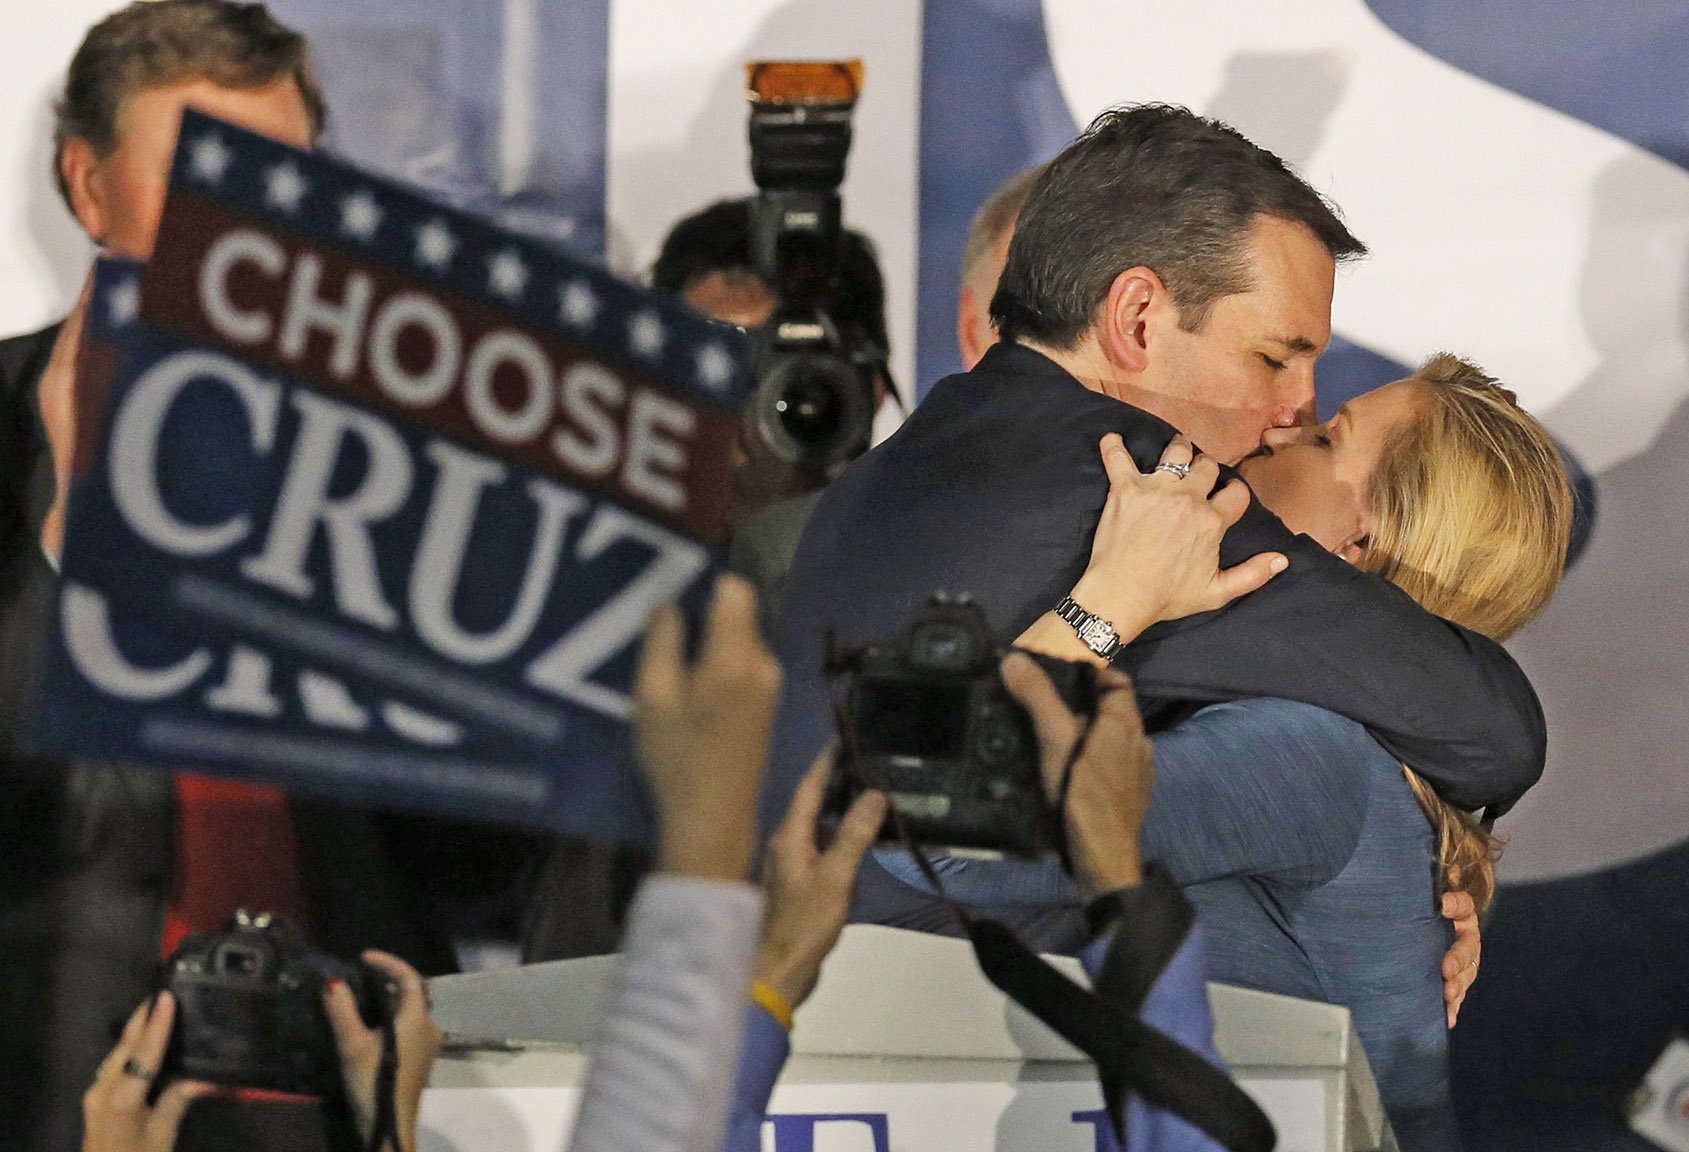 U.S. Republican presidential candidate Ted Cruz kisses his wife Heidi Cruz after winning at his Iowa caucus night rally in Des Moines